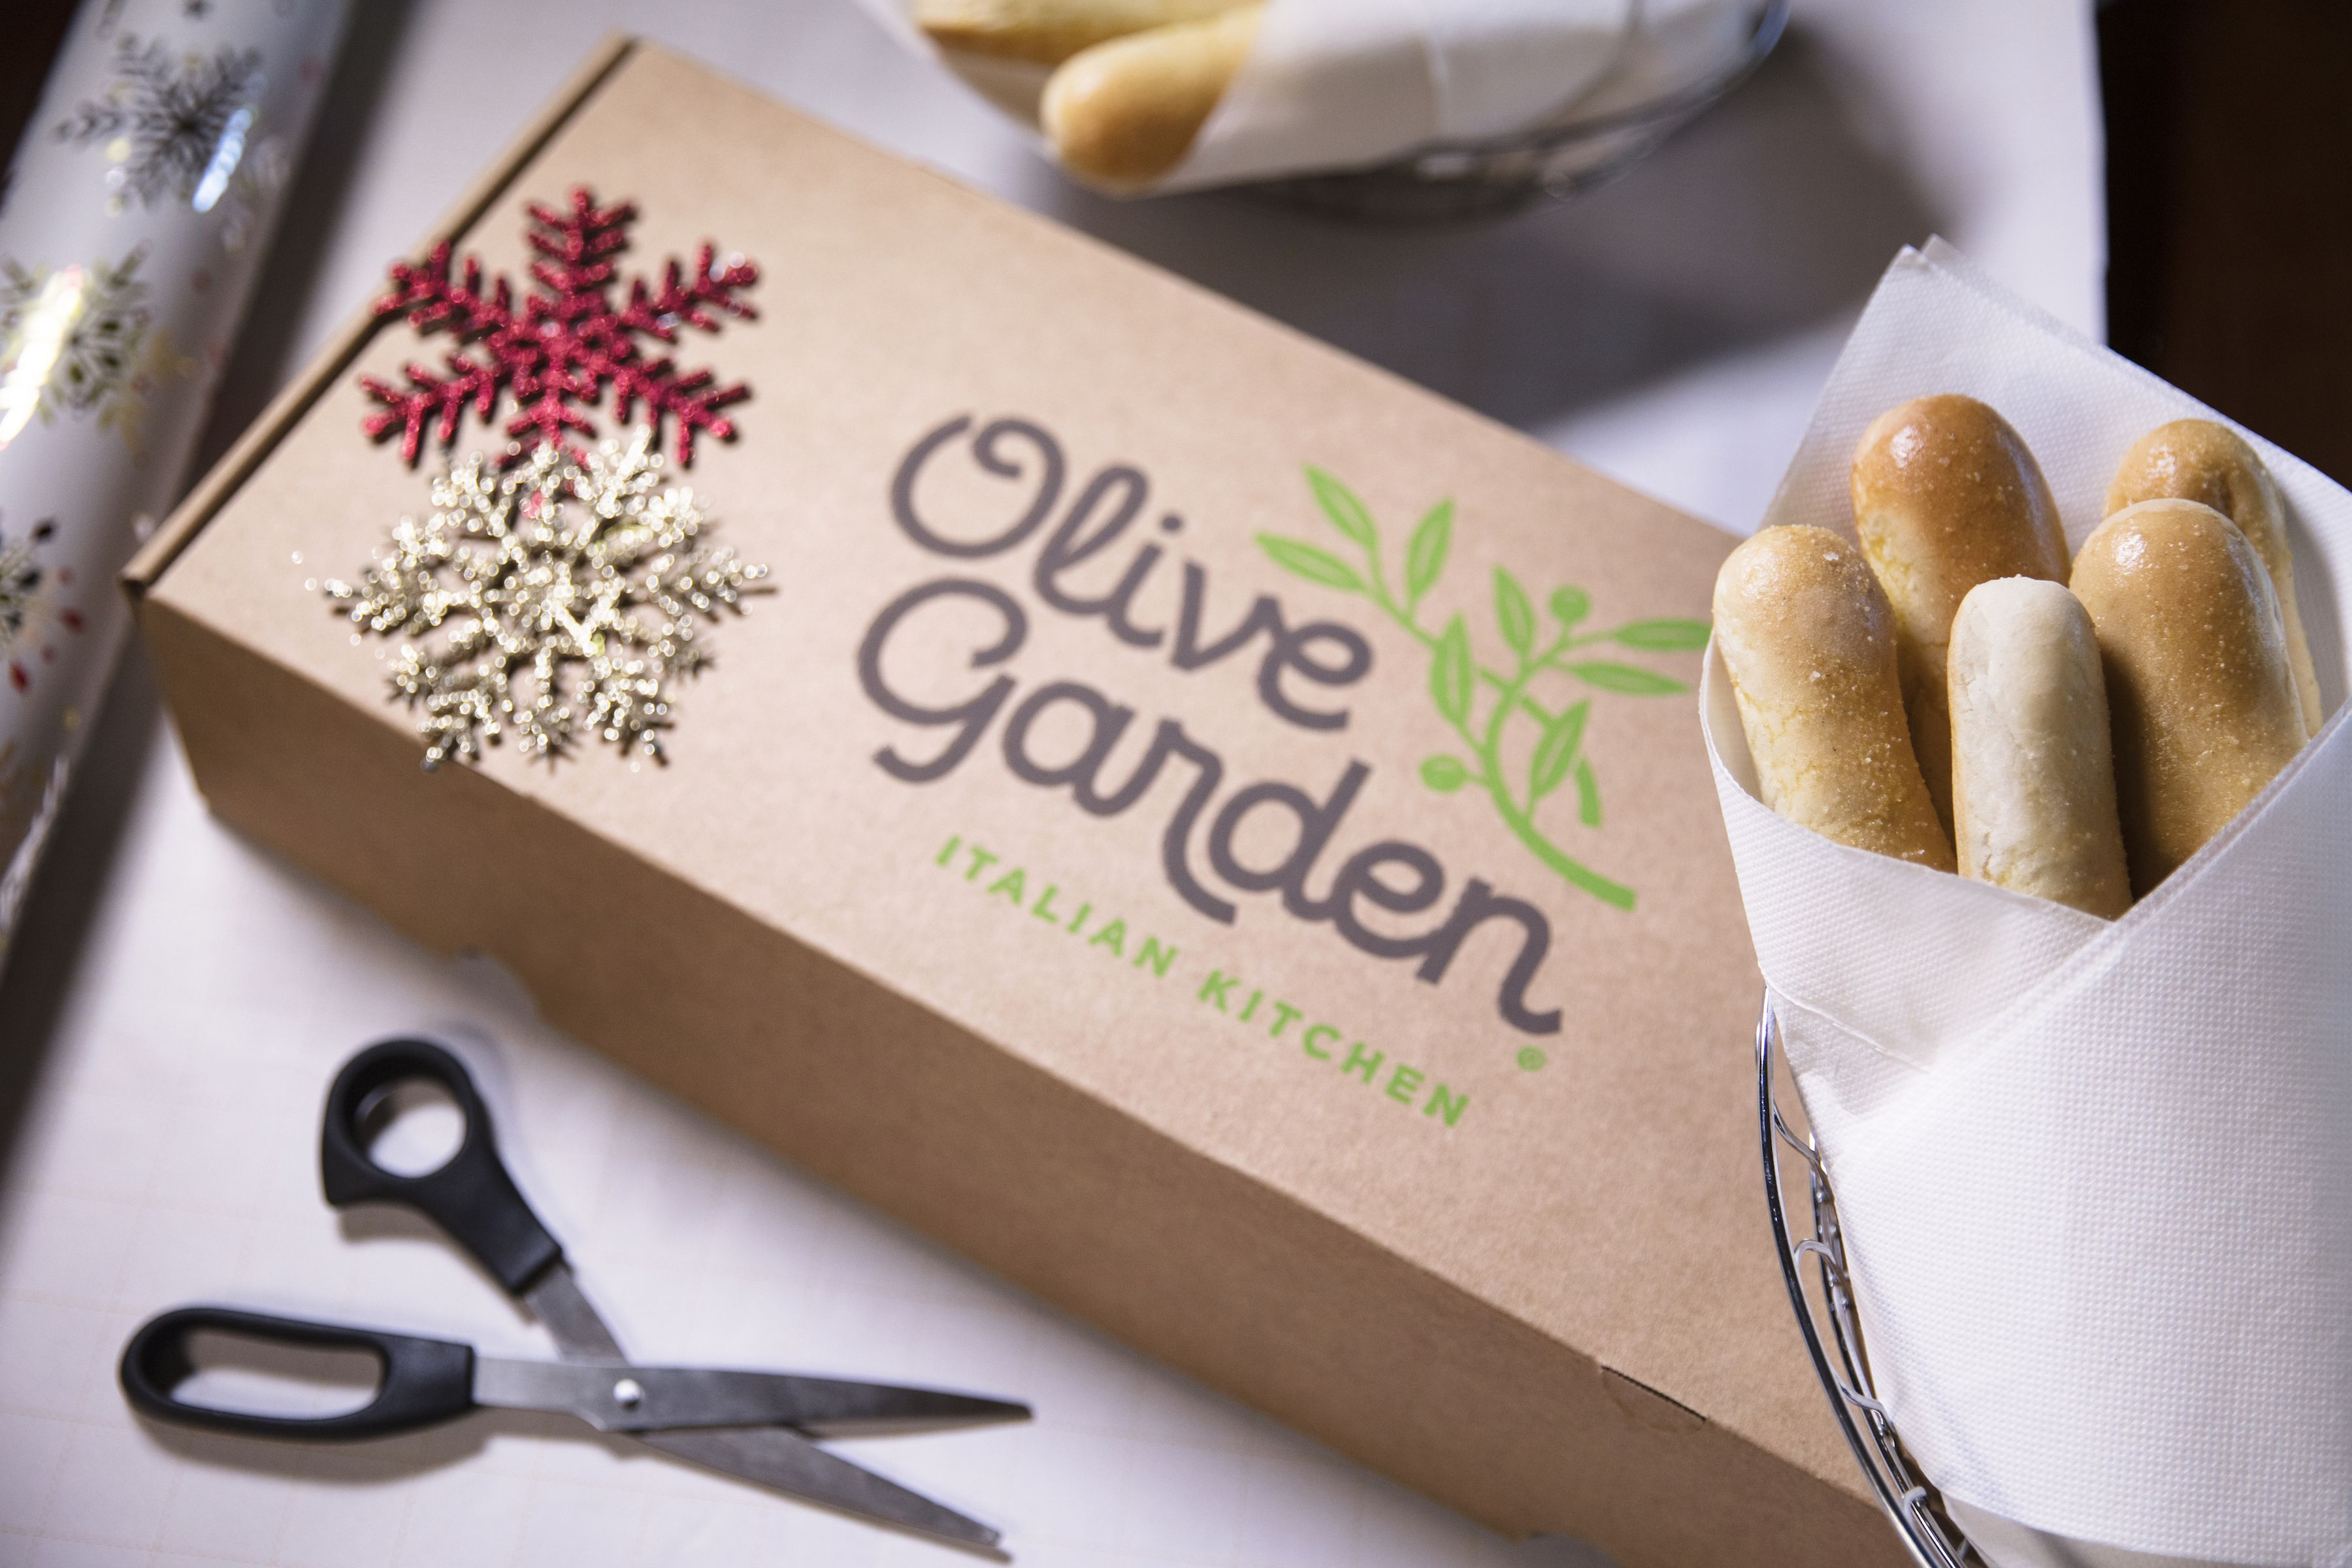 Olive Garden Wants You To Give The Gift Of Breadsticks This Year